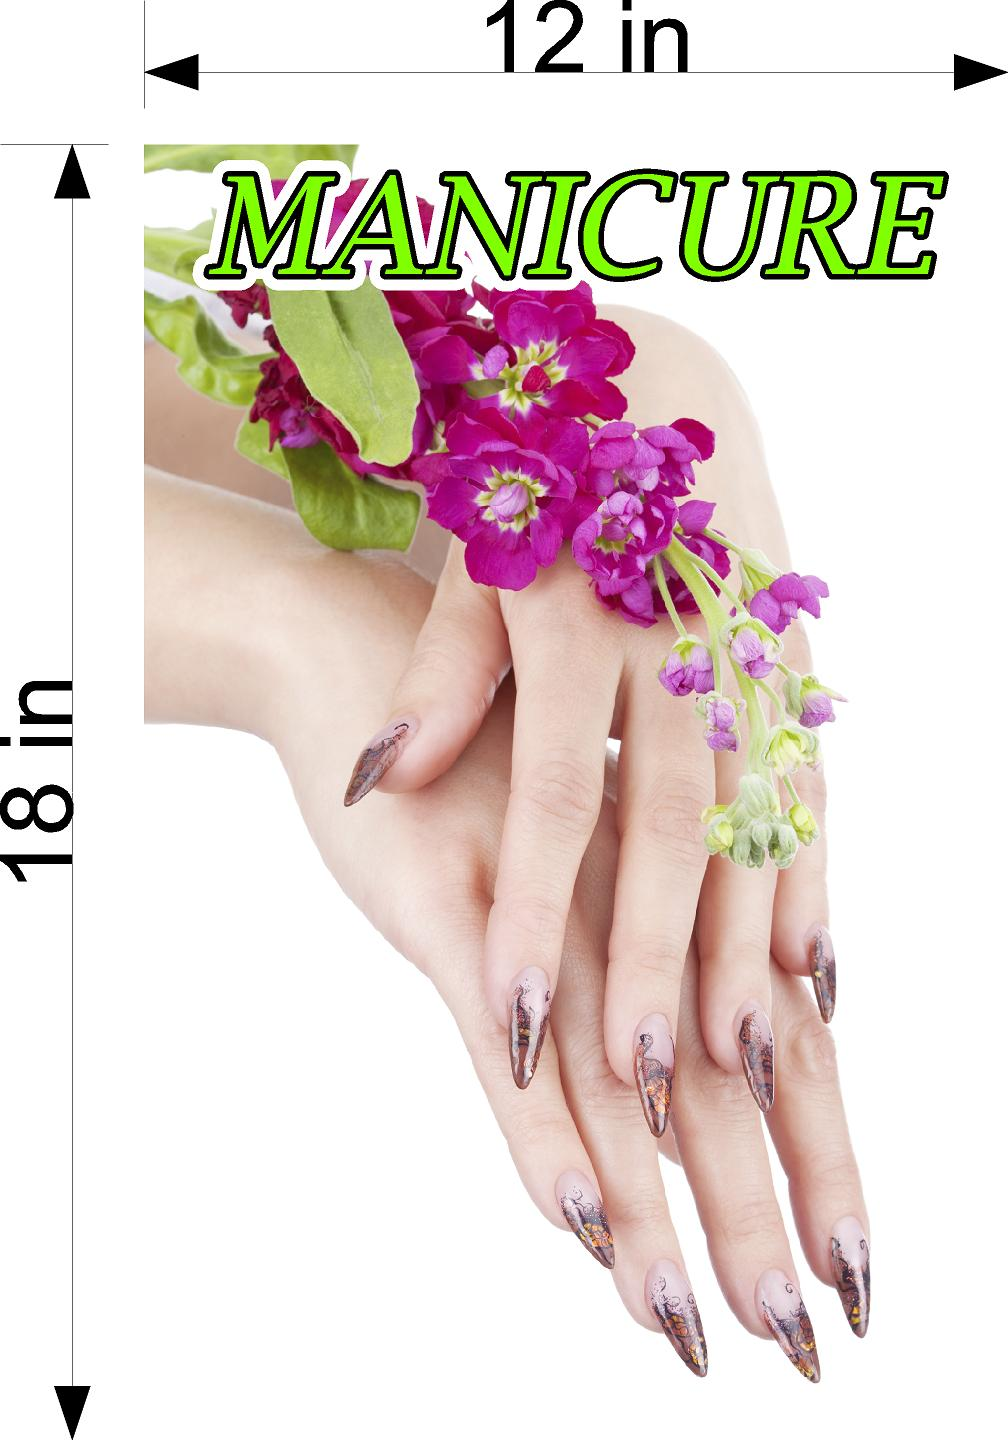 Manicure 02 Wallpaper Poster Decal with Adhesive Backing Wall Sticker Decor Indoors Interior Sign Vertical